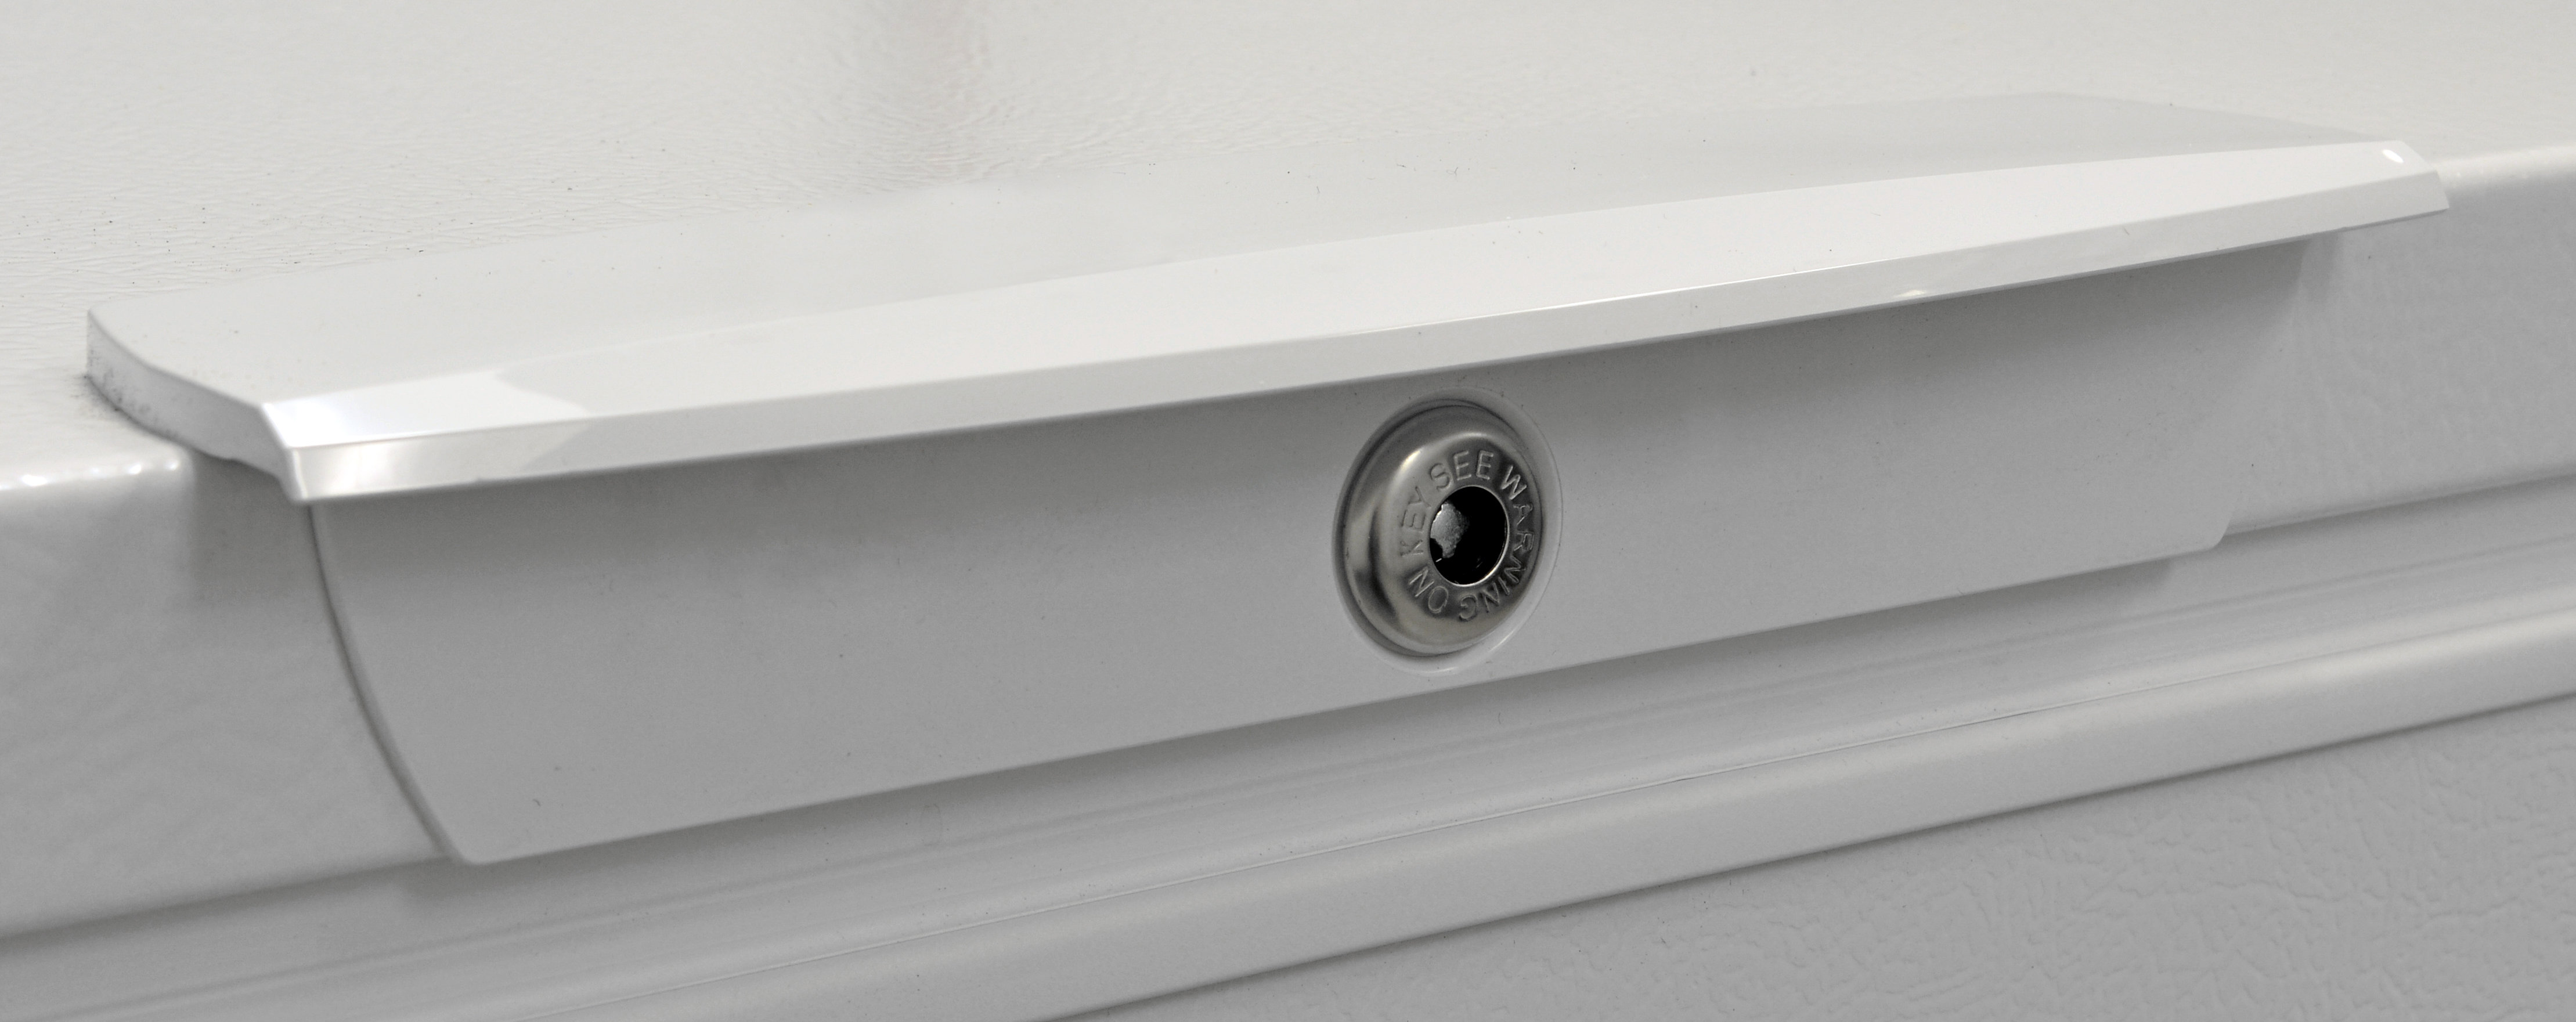 The Frigidaire FFFC16M5QW's door lock is useful in active households for preventing accidental openings.